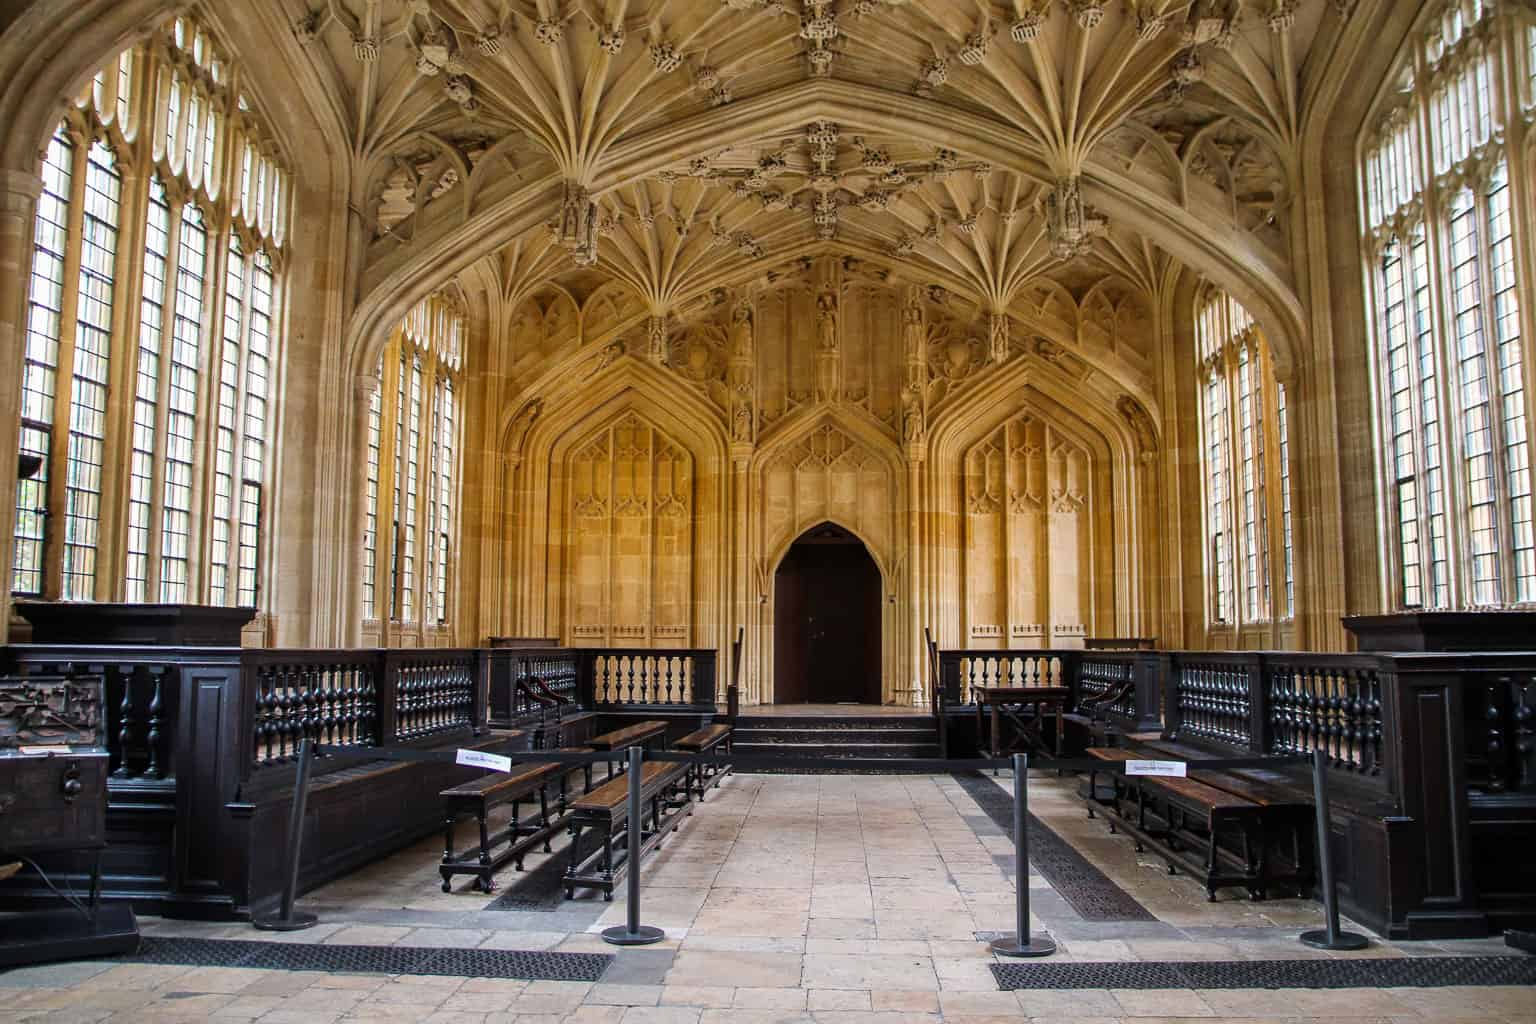 Harry Potter in Oxford in the Divinity School